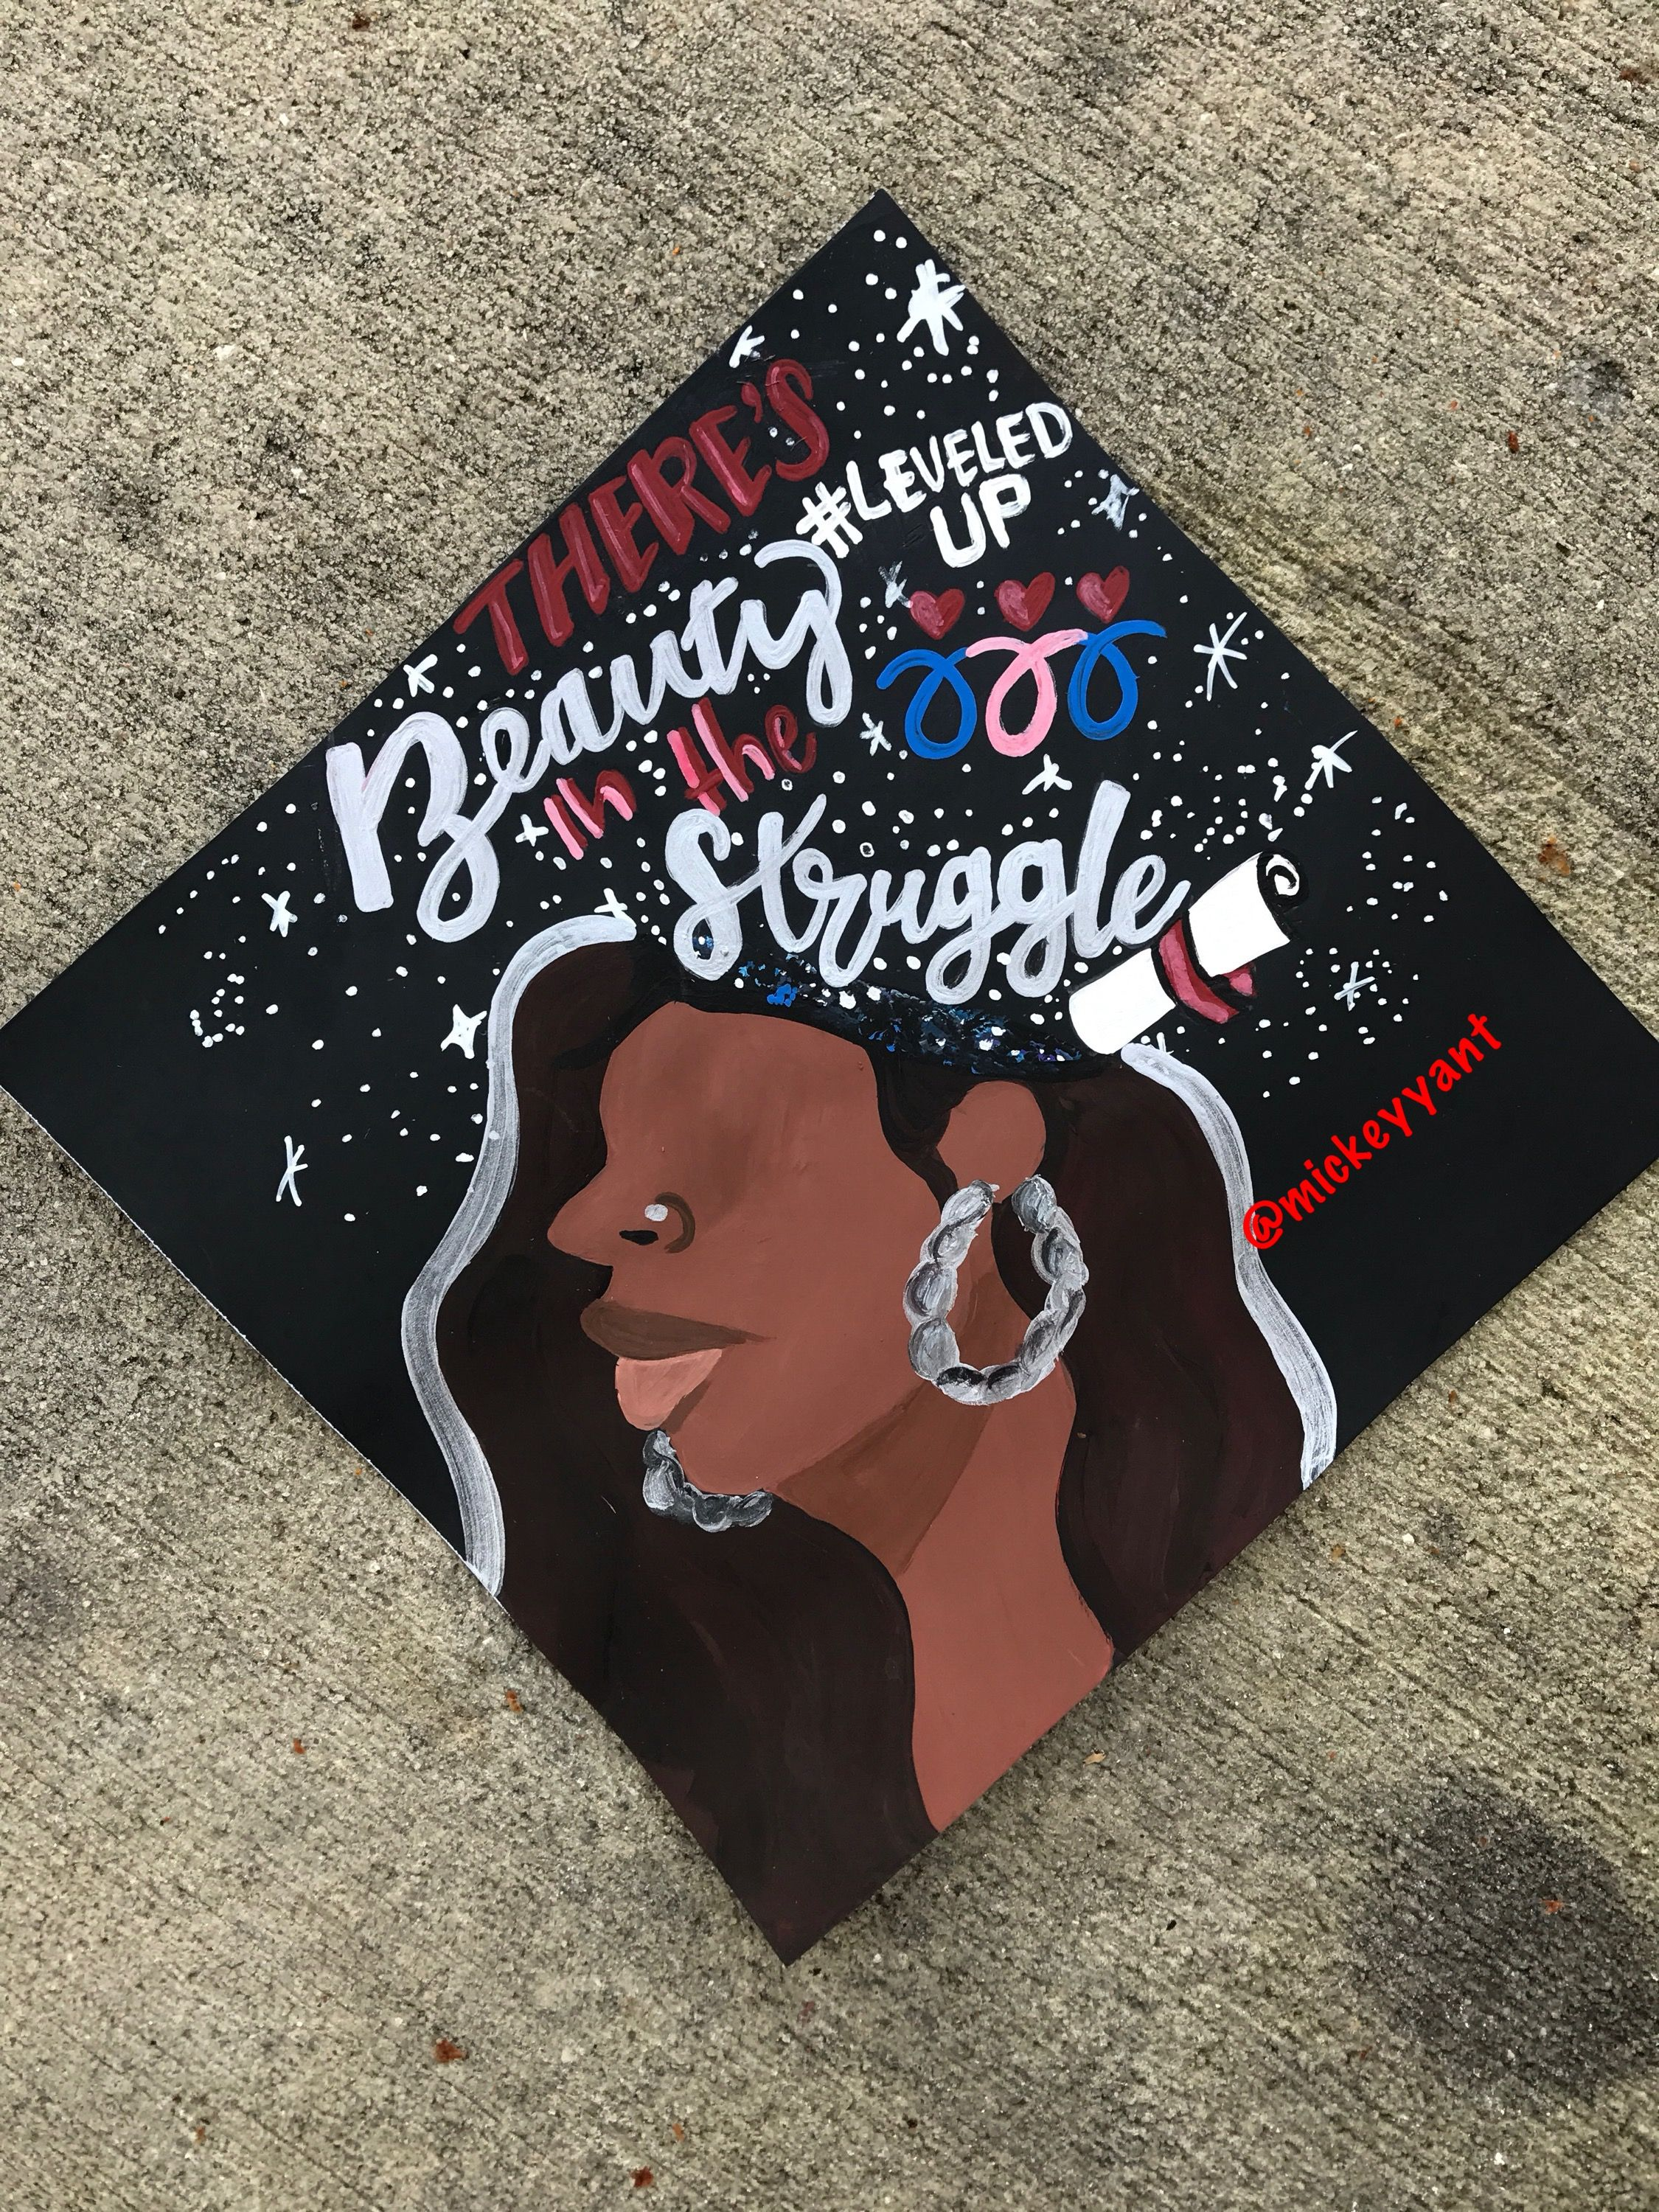 There is beauty in the struggle grad cap Black girl magic ...